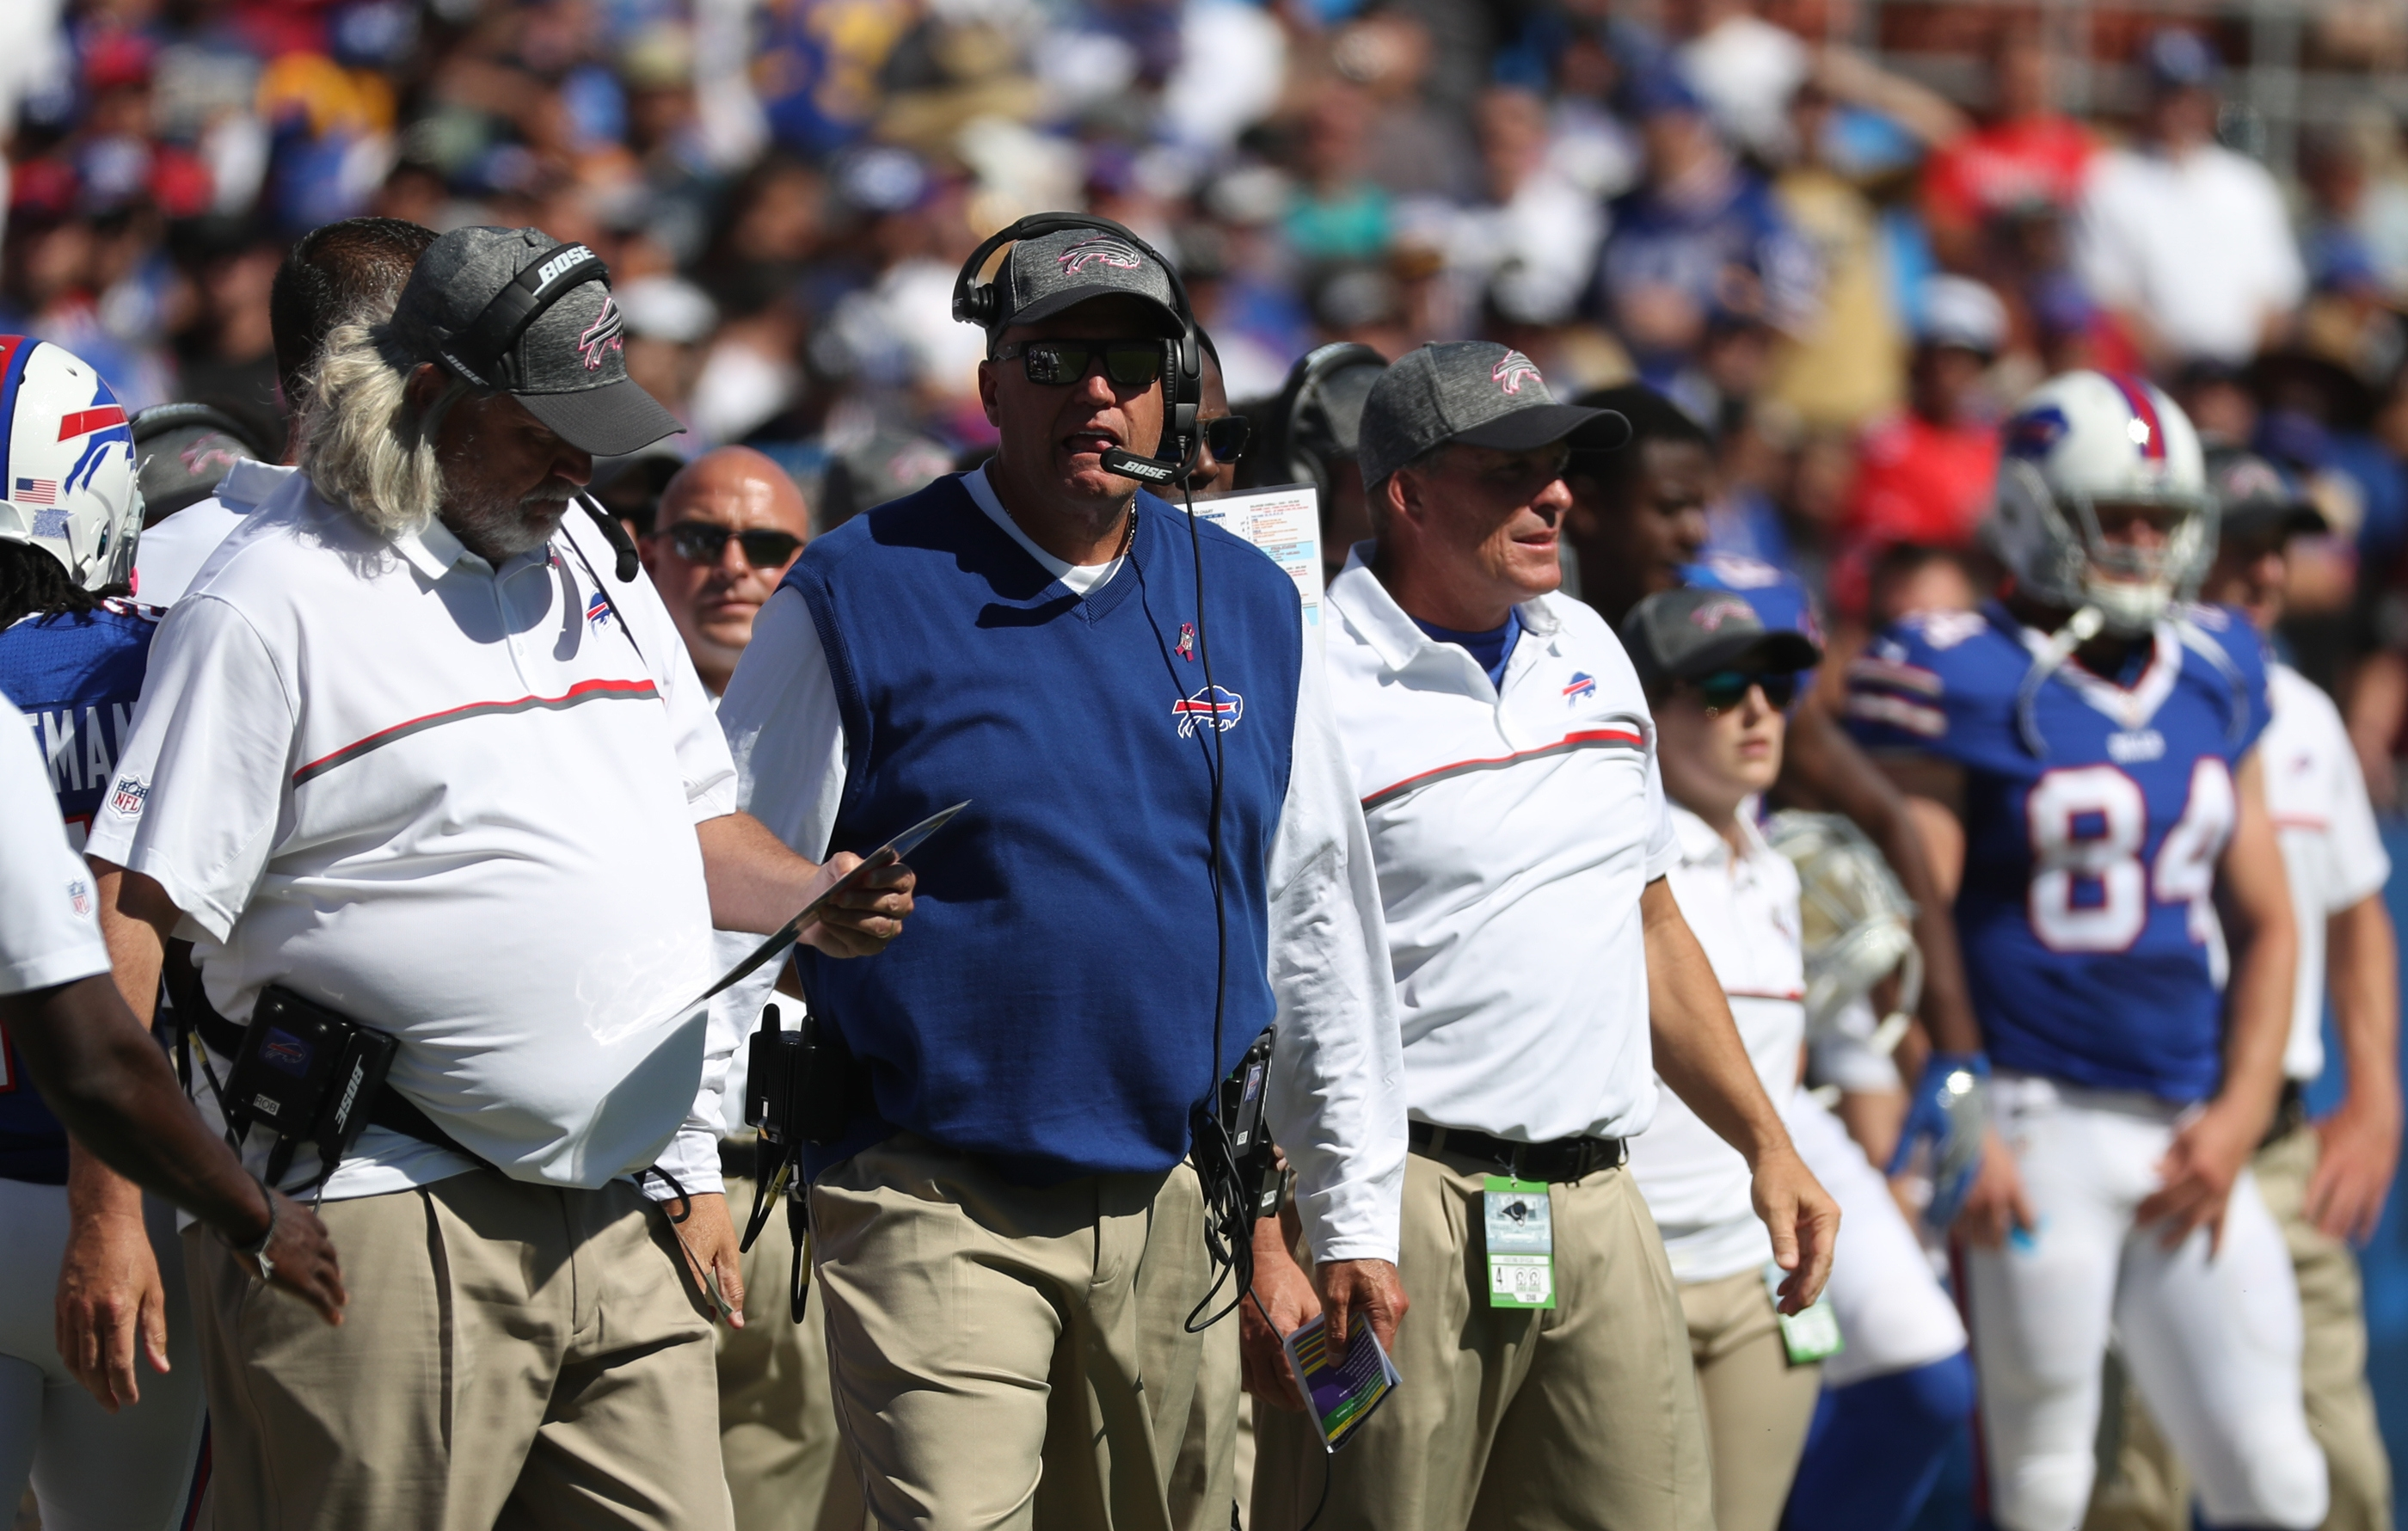 Rex Ryan & Co. had a very solid performance in L.A.